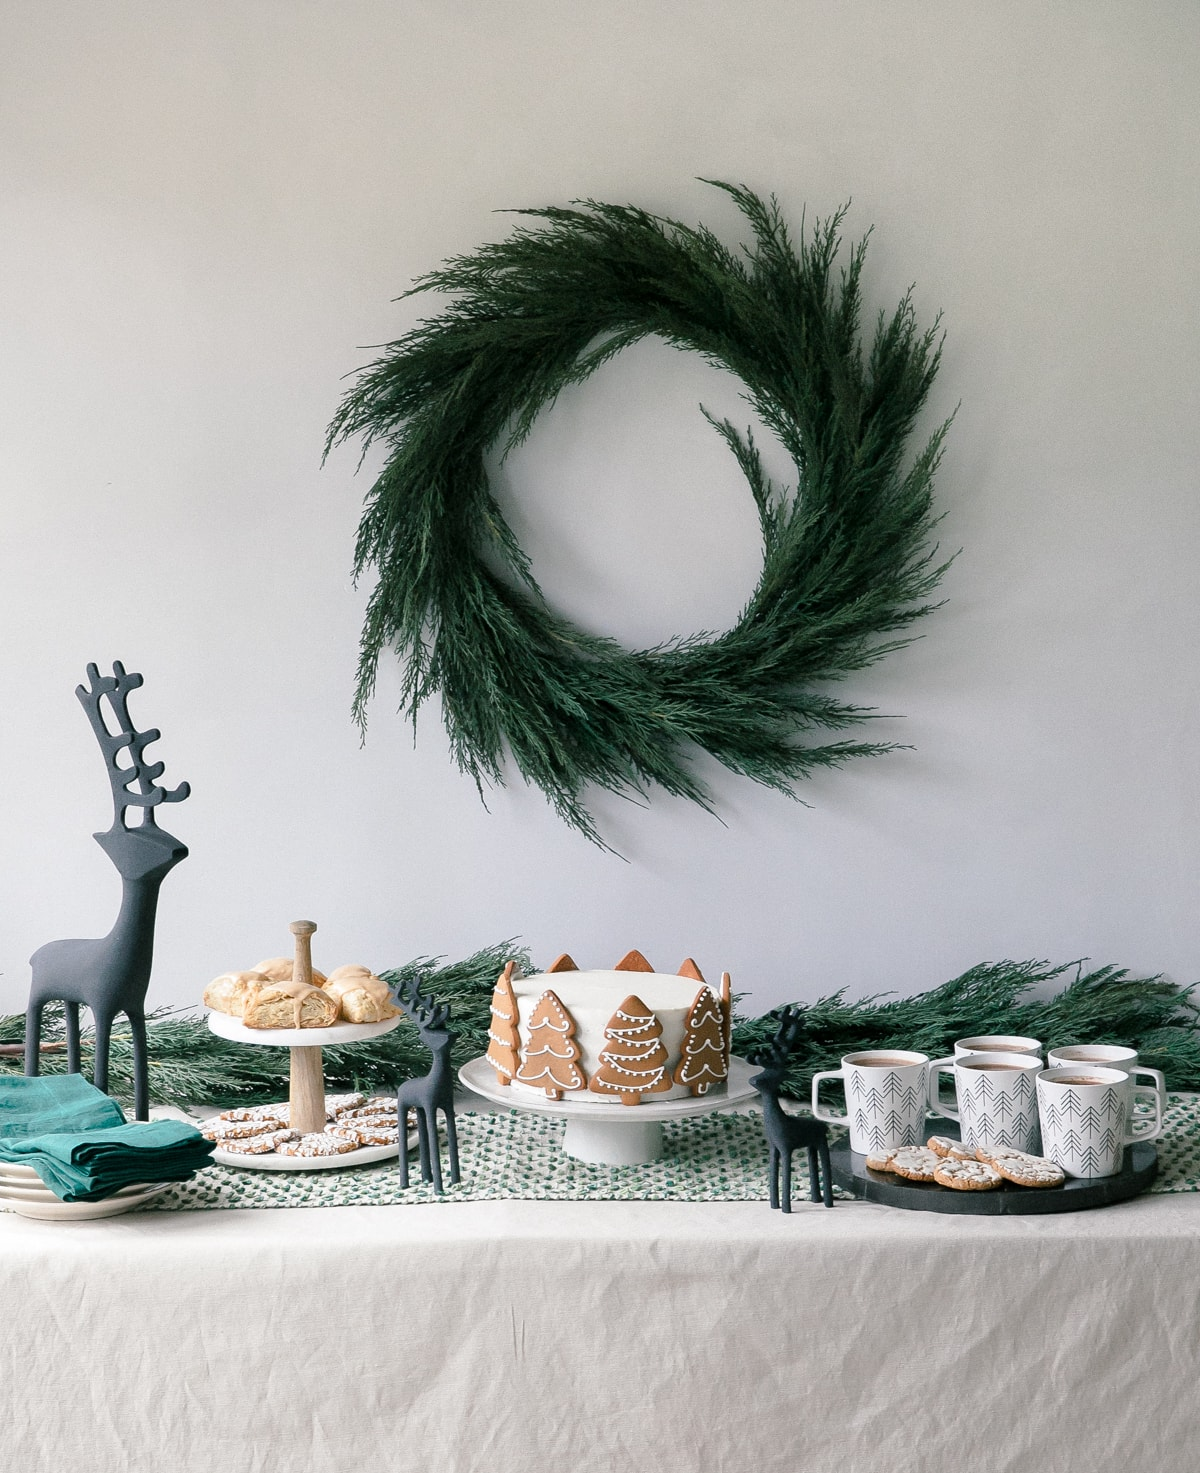 Holiday Dessert Table With Crate And